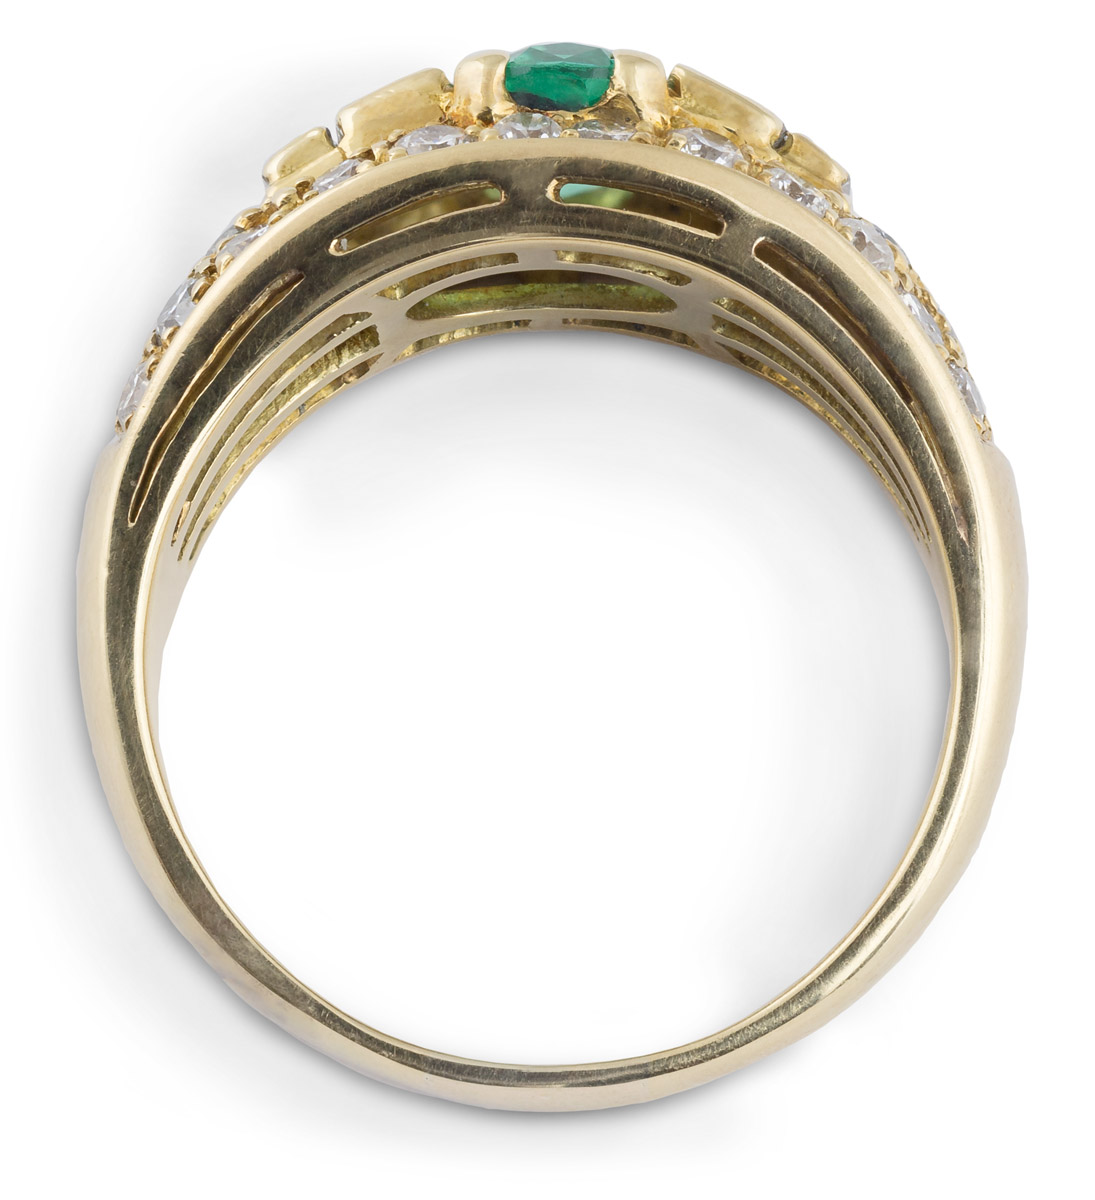 Emerald Ring with Diamond Accents - Top